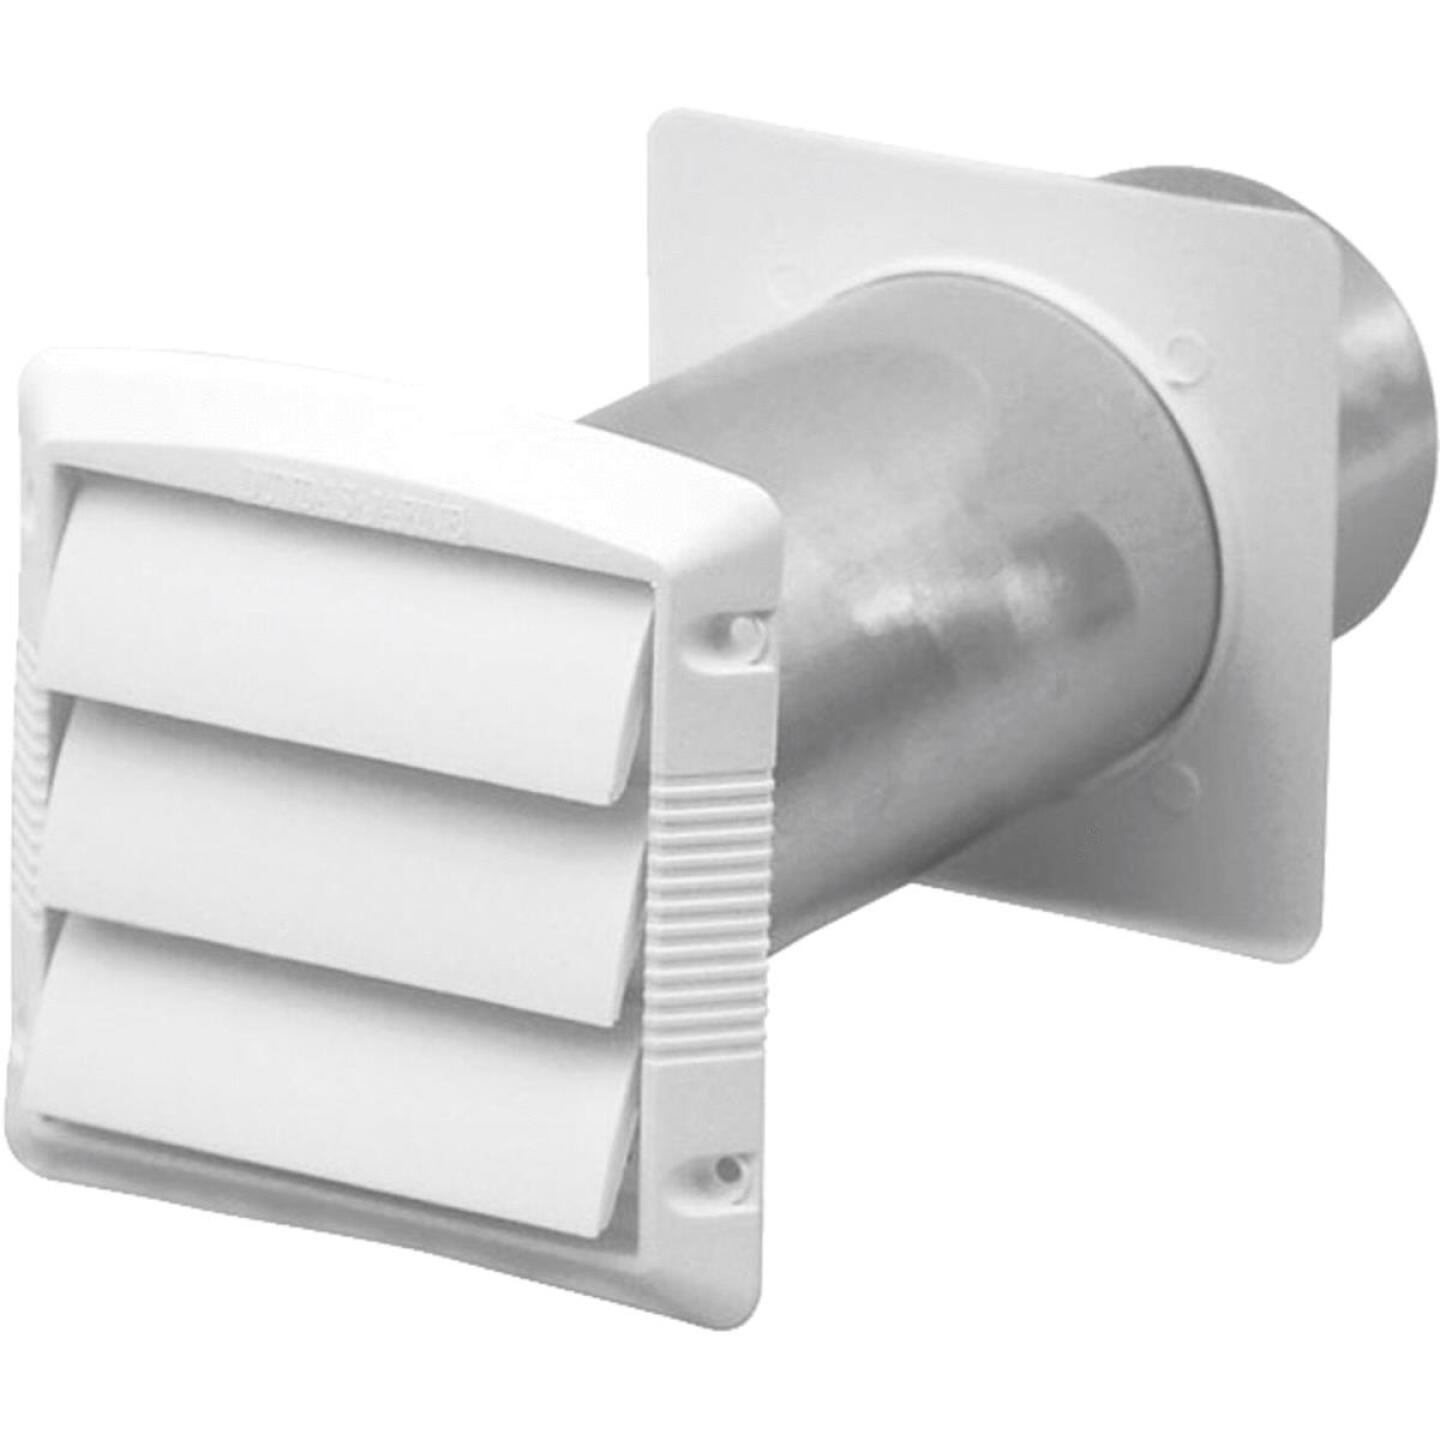 Dundas Jafine 4 In. White Plastic 3-Louver Dryer Vent Hood Image 1